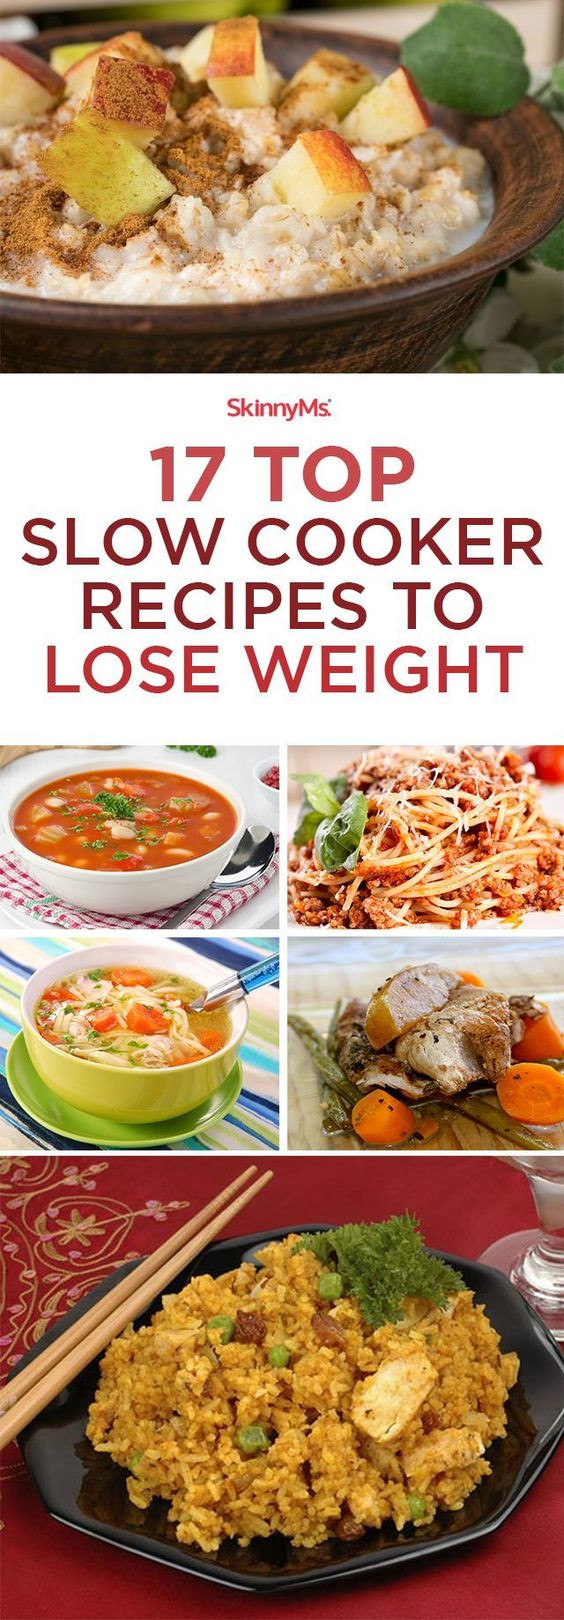 Slow Cooker Recipes For Weight Loss  17 Top Slow Cooker Recipes to Lose Weight